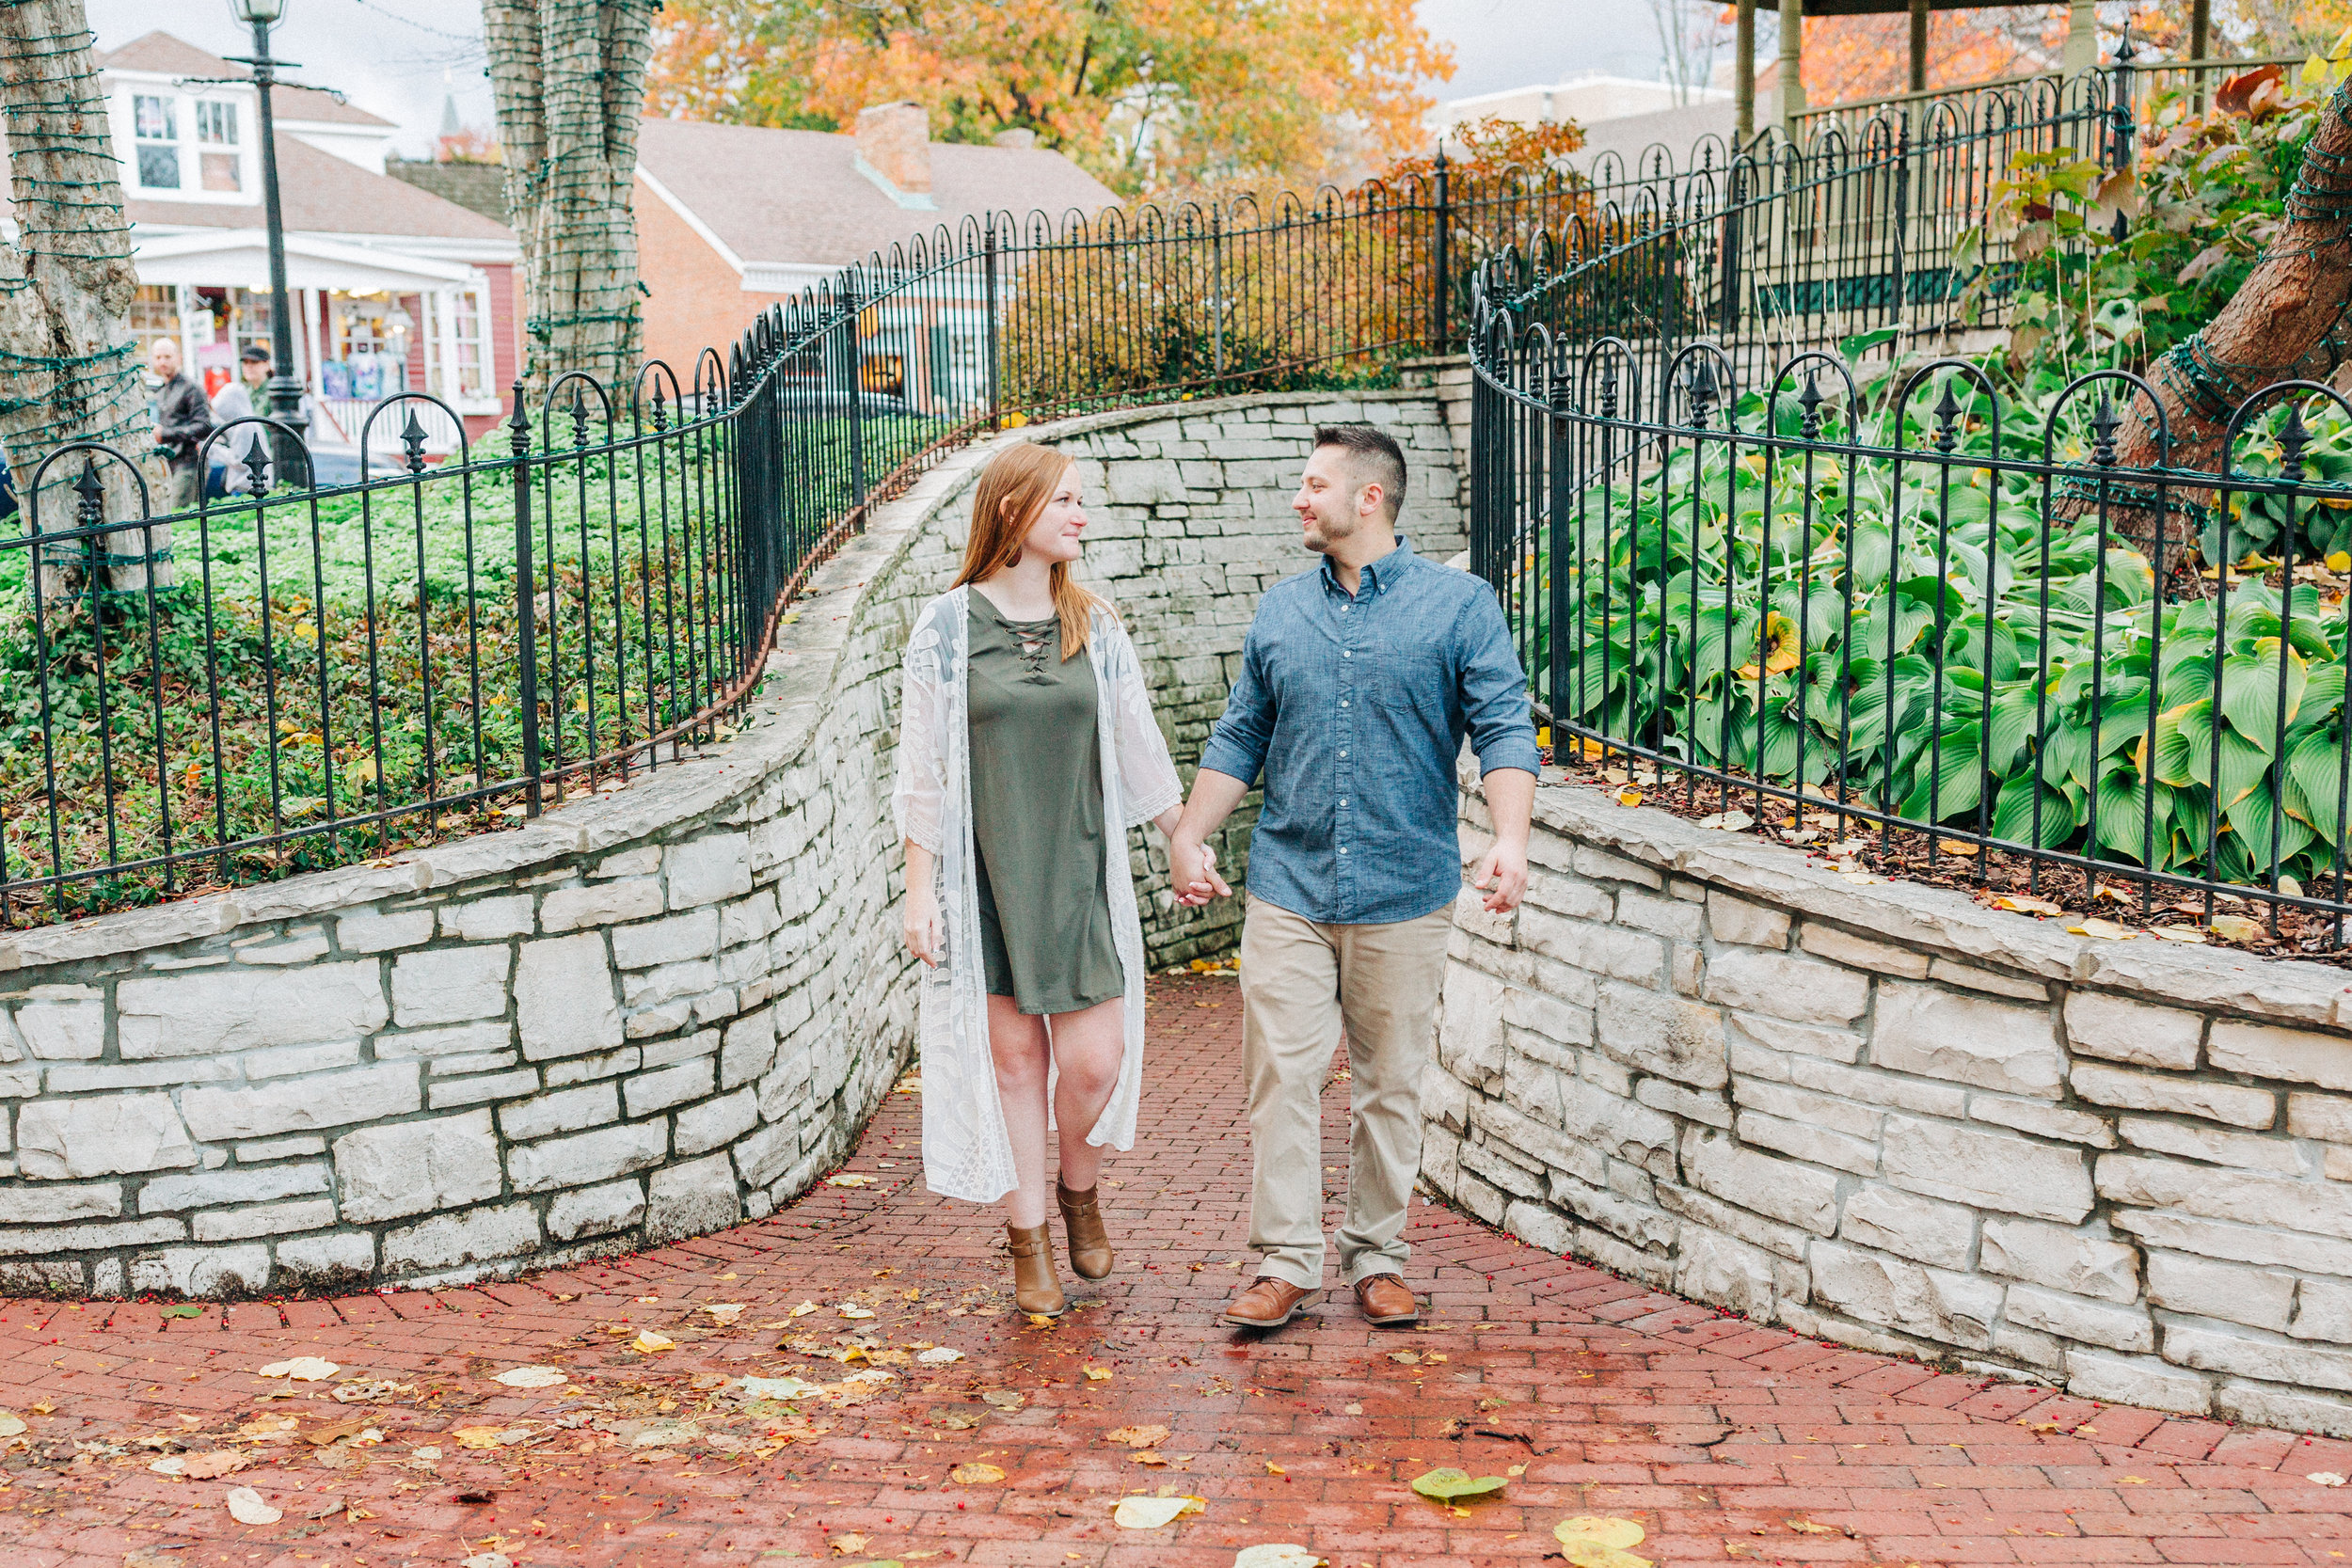 Dorothy_Louise_Photography_Sam_Nick_Main_Street_Saint_Charles_Engagement-4529.jpg